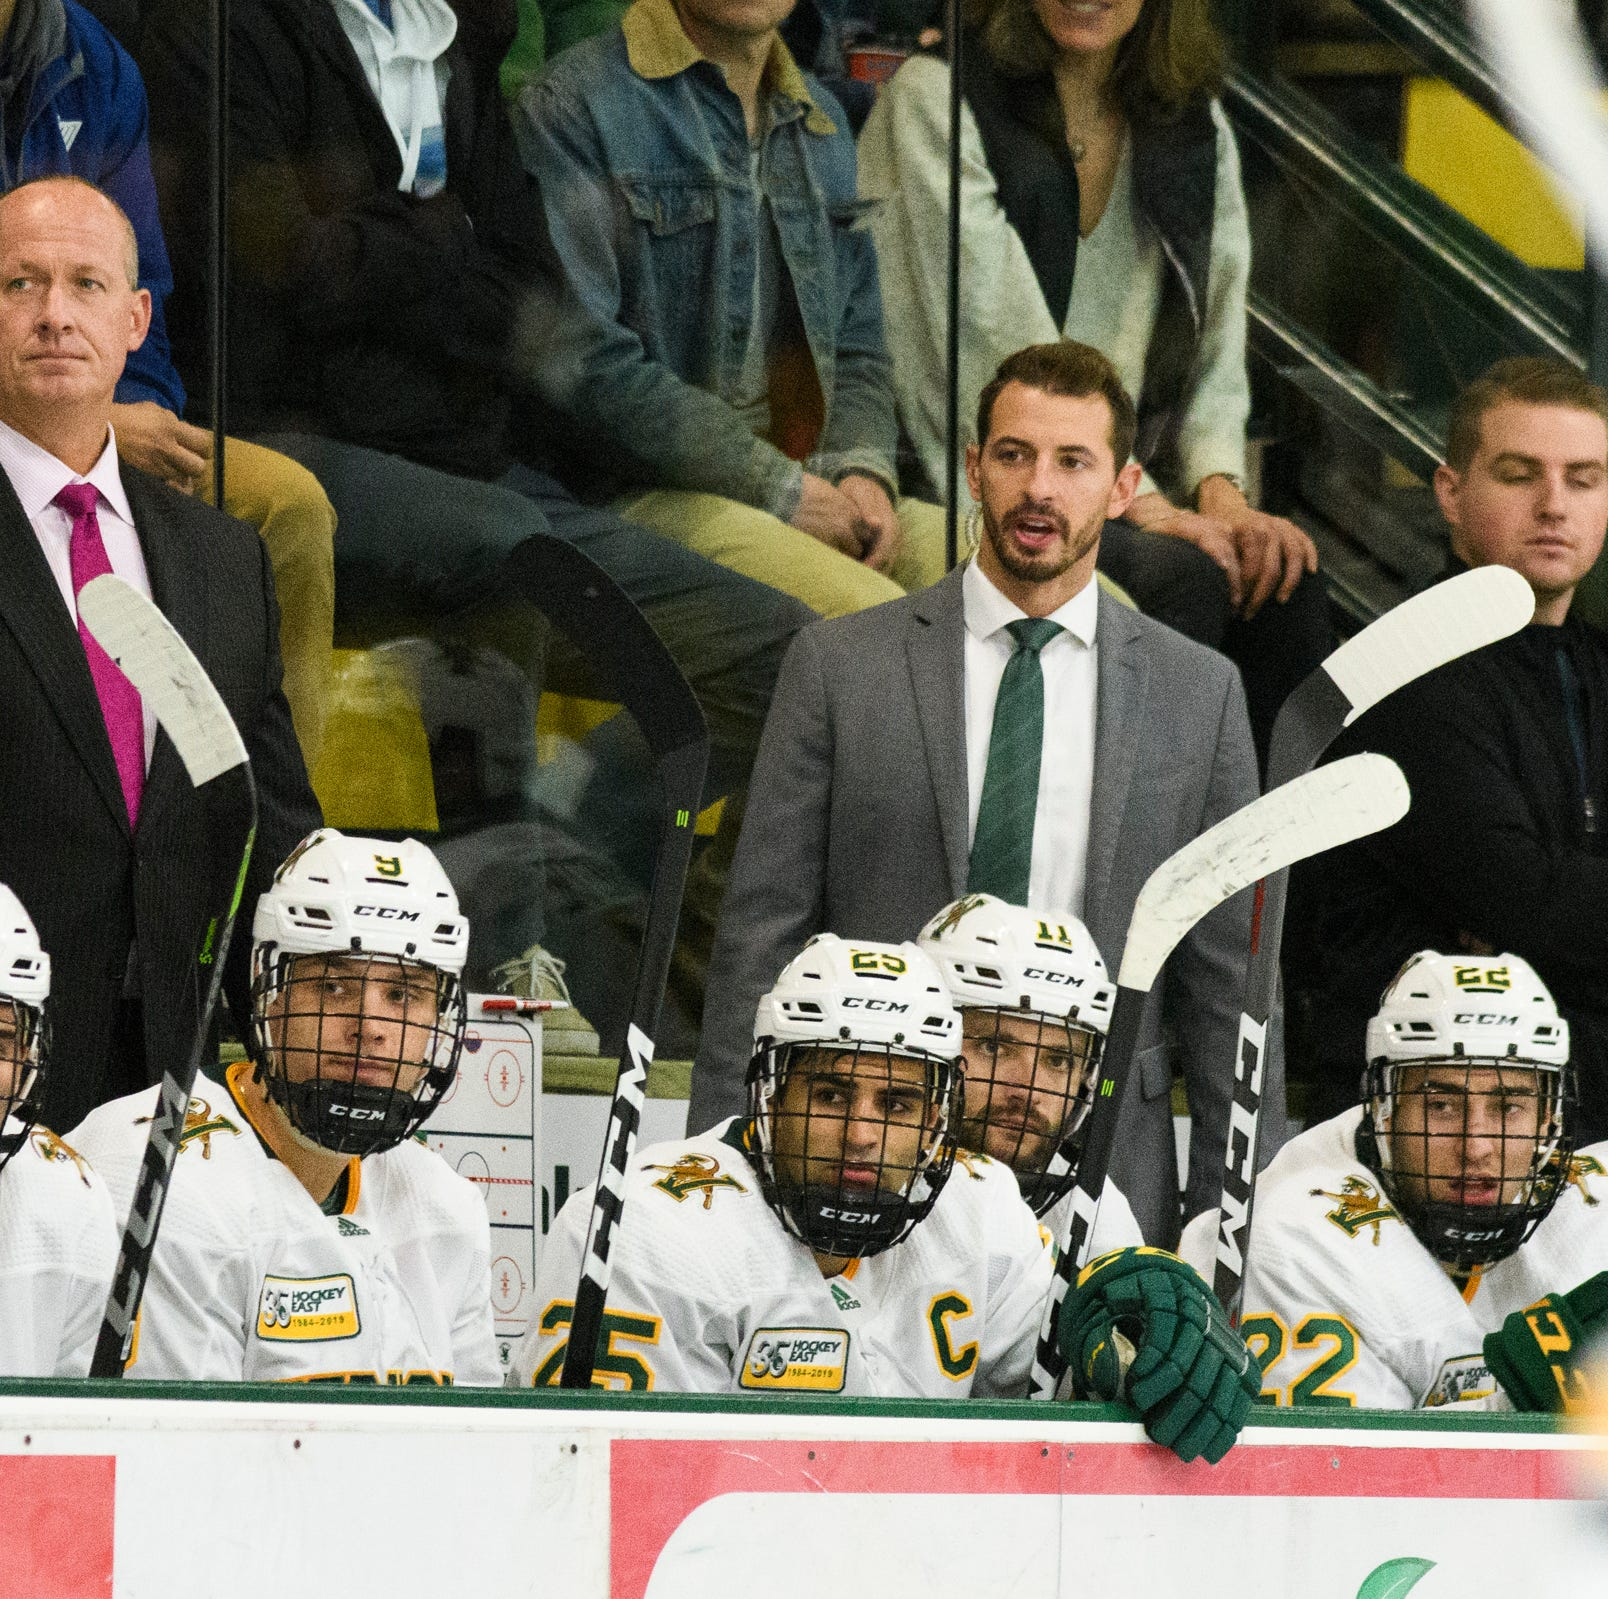 UVM men's hockey: Sneddon to return for final year of 3-year contract